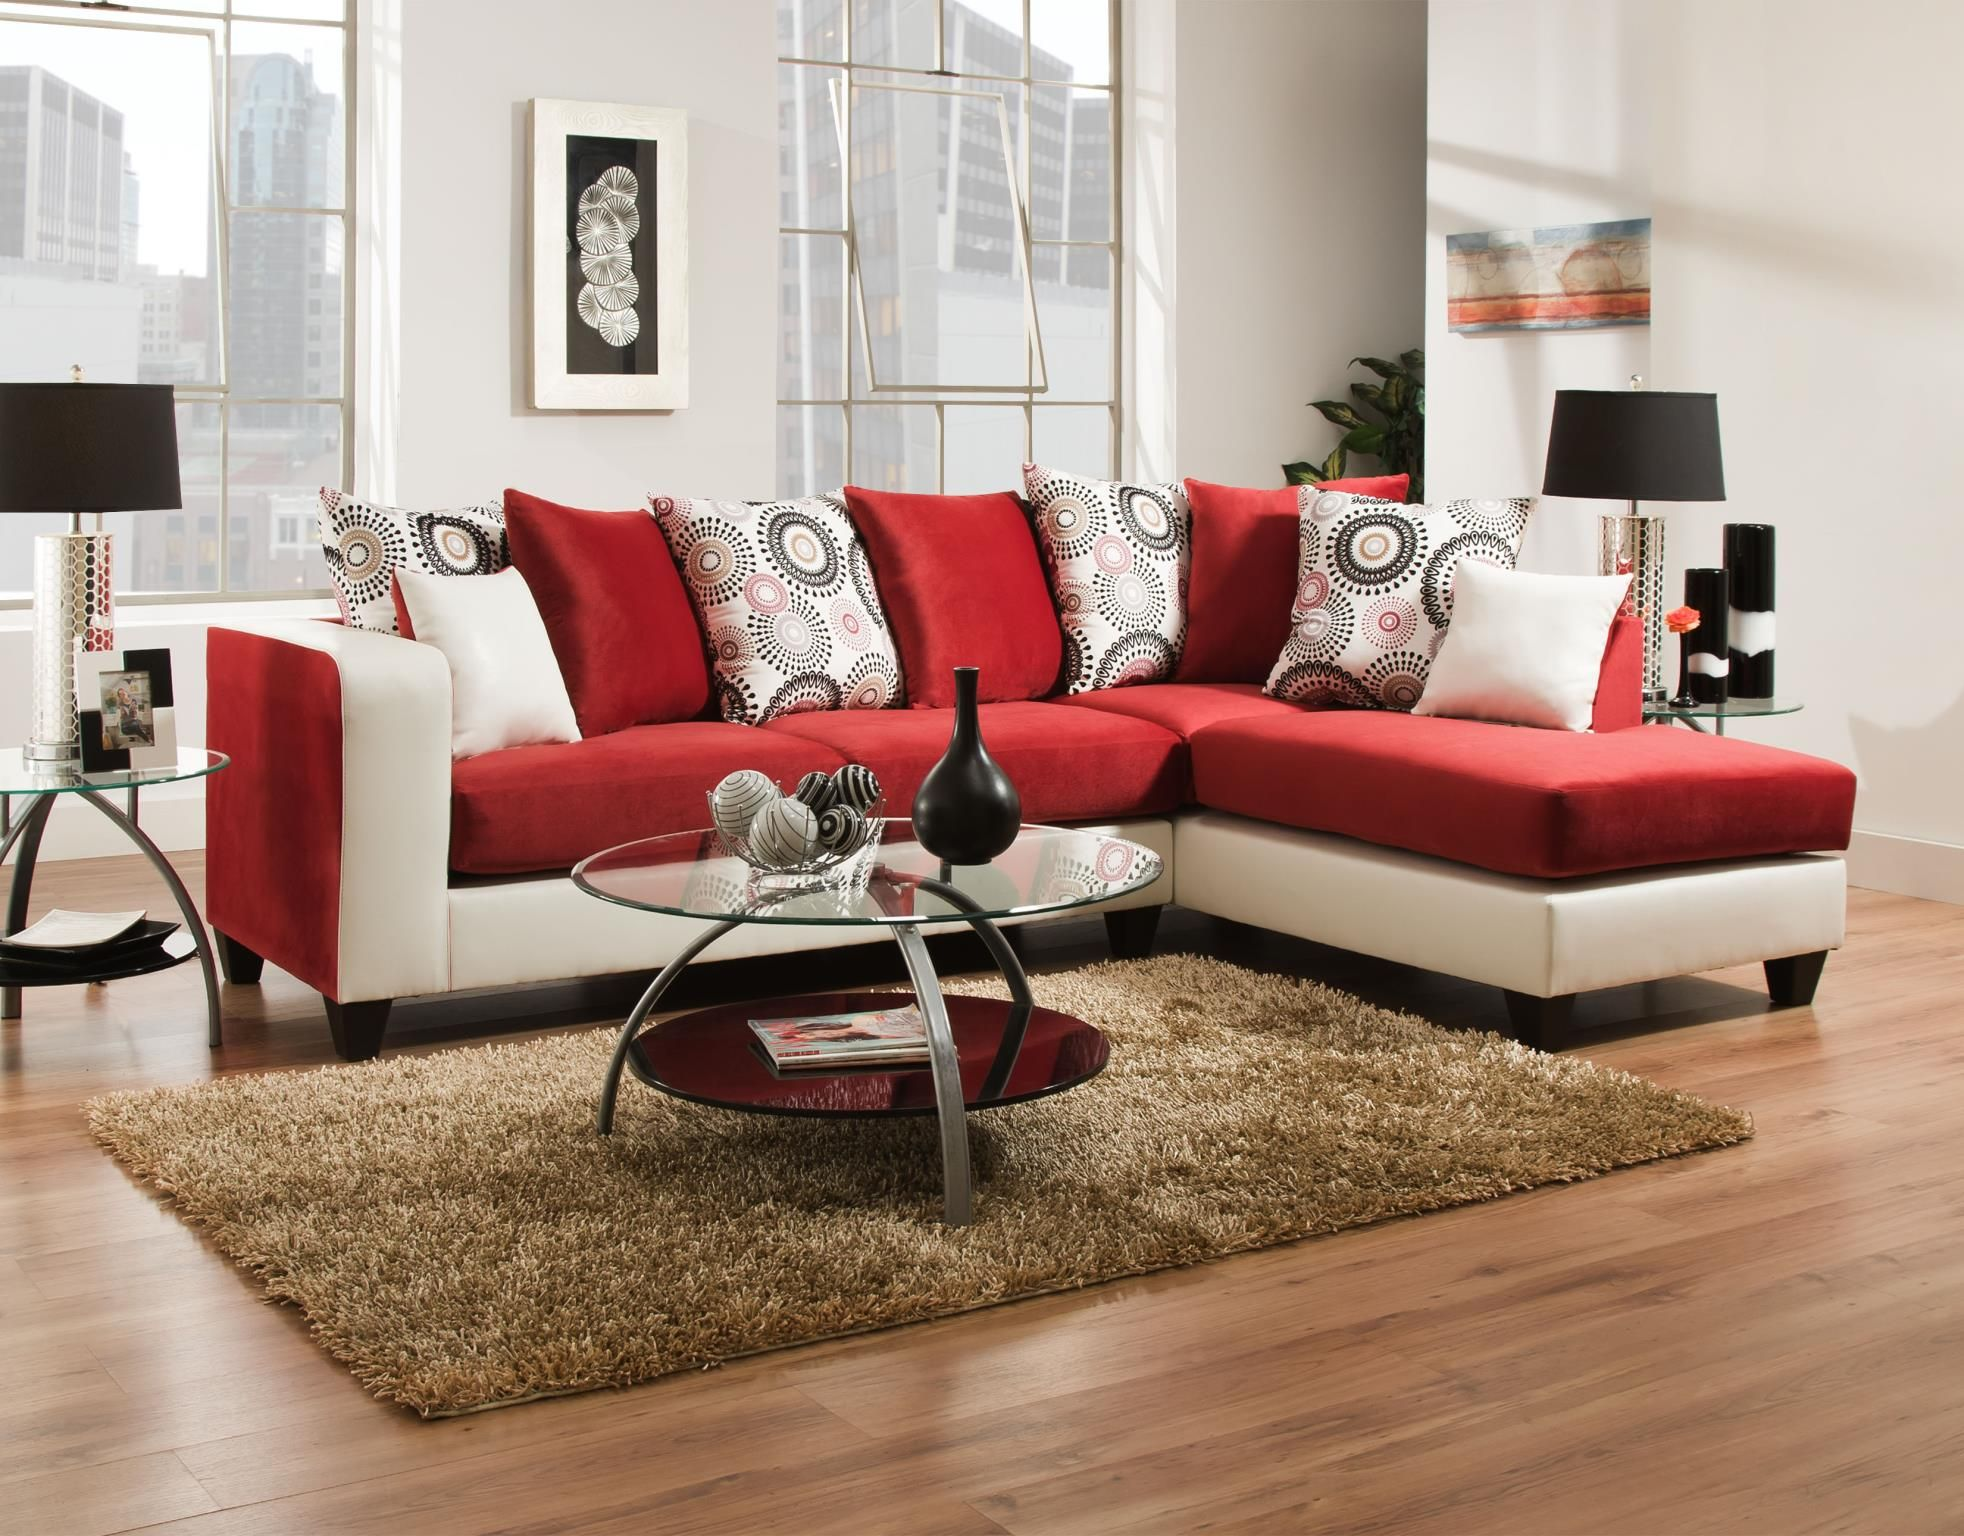 Sofas For Living Room With Price Delta Furniture 4124 03 Living Room Set Living Room Furniture